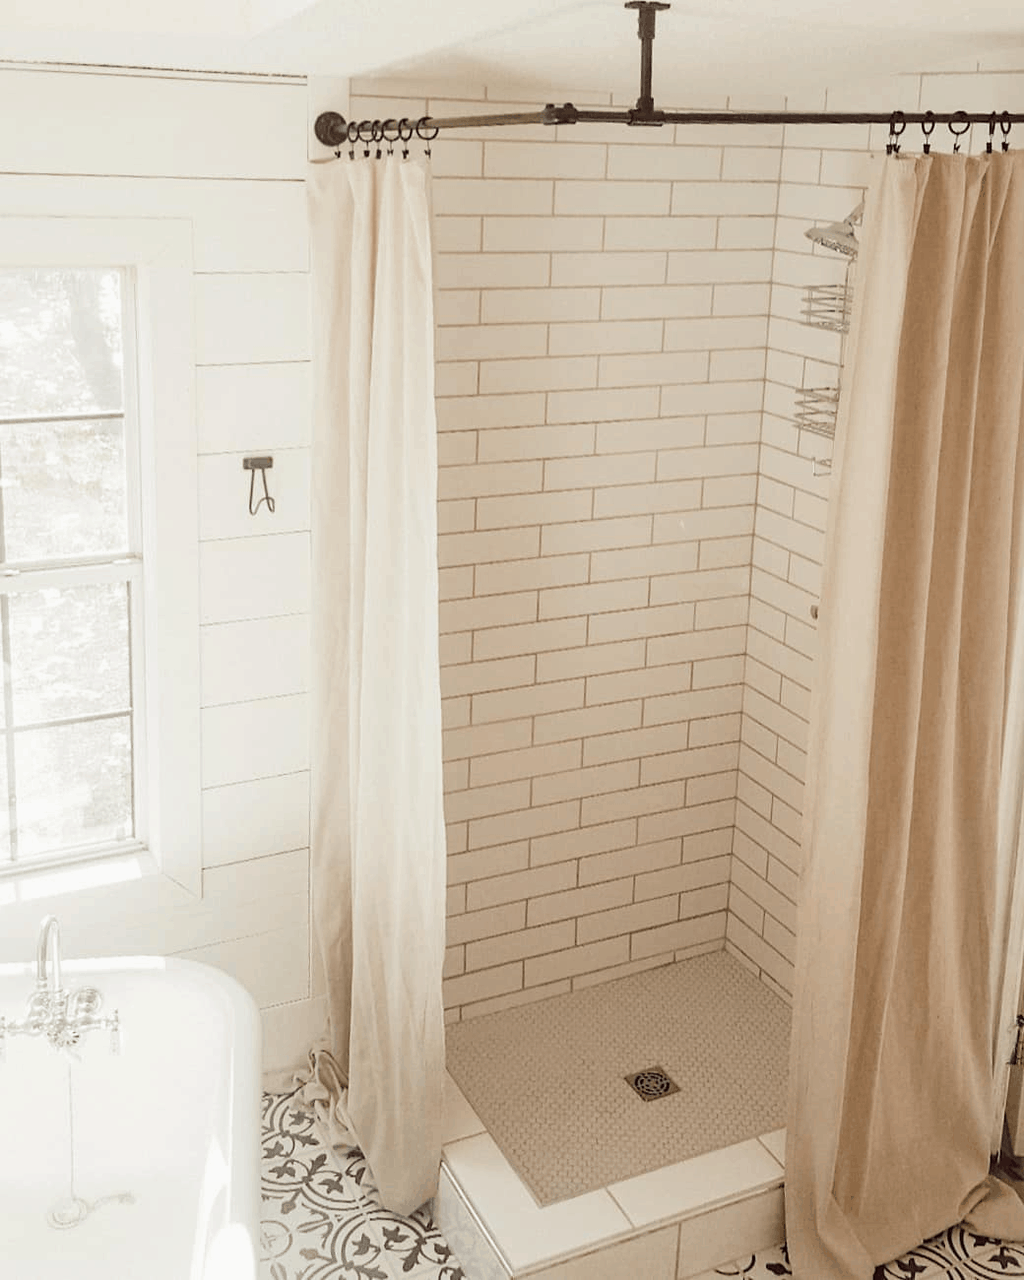 Eclectic Farmhouse Double Wide Mobile Home Master Bathroom Remodel After 00009